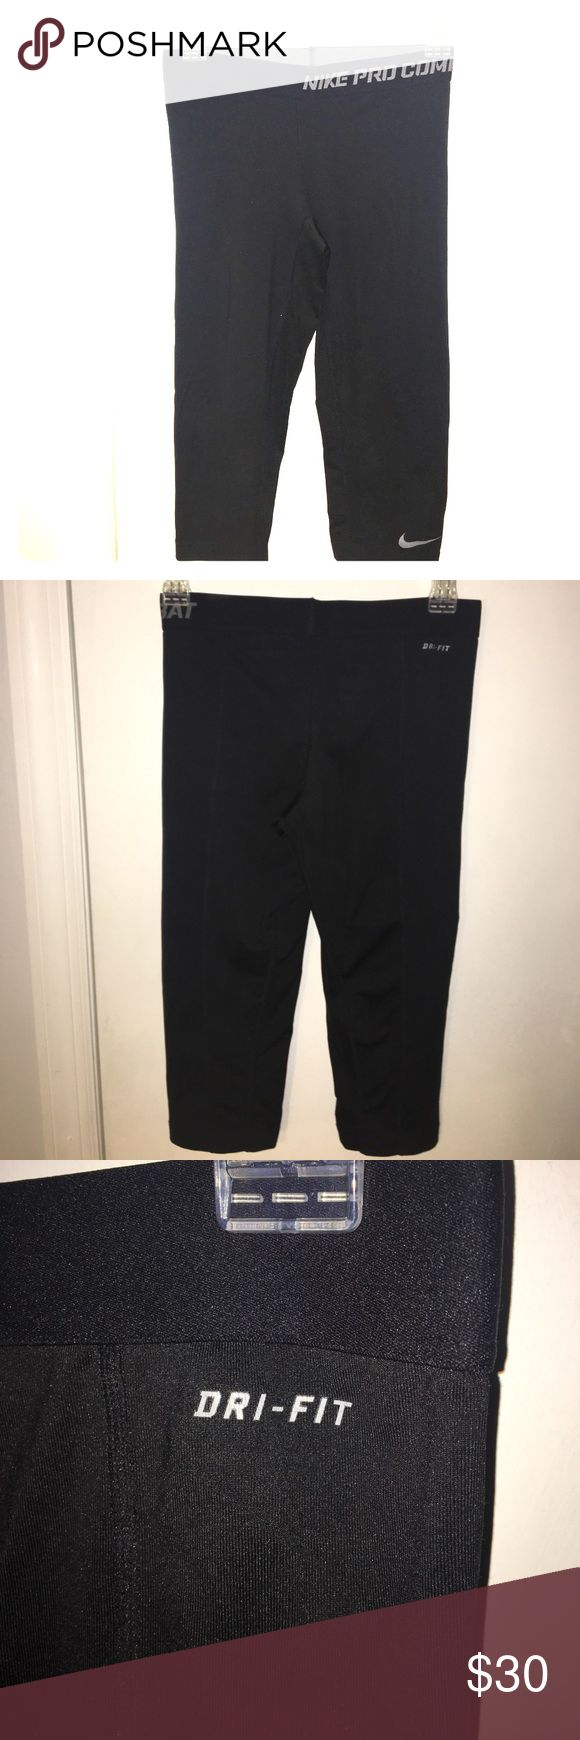 NIKE PRO COMBAT CAPRI LEGGINGS Amazing cropped leggings. Size-SMALL. Compression. Great for cycling and other sweaty workouts. VERY GOOD CONDITION. Nike Pants Capris